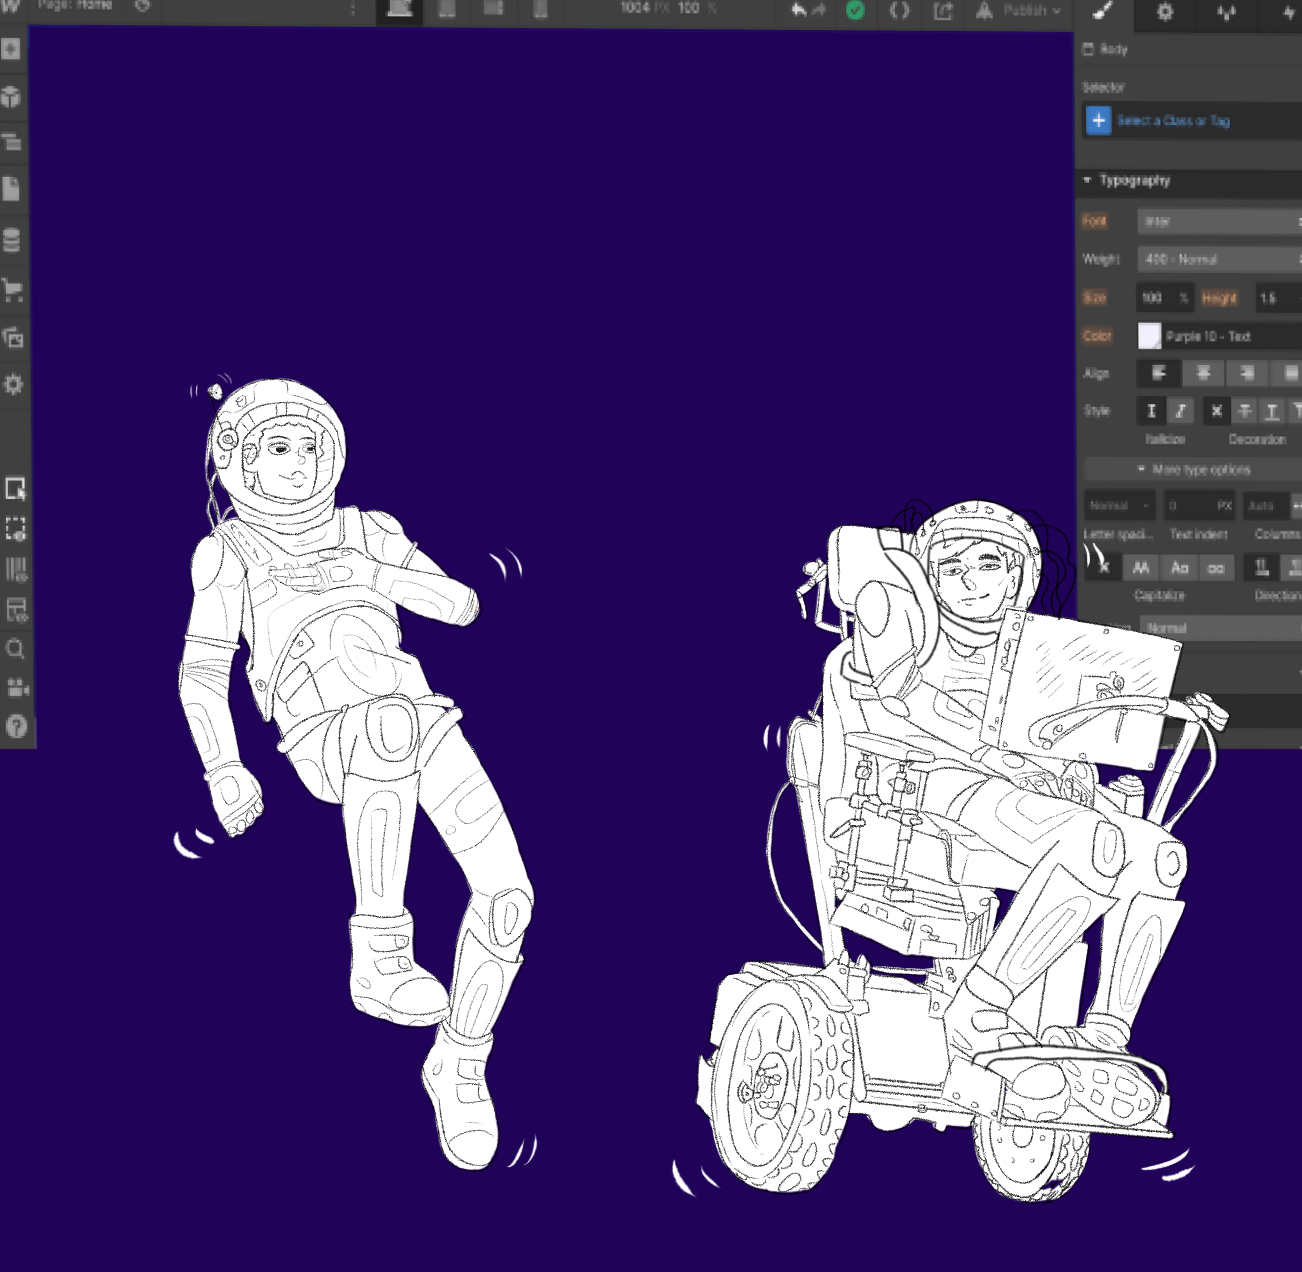 deaf man and man in a wheelchair floating in space